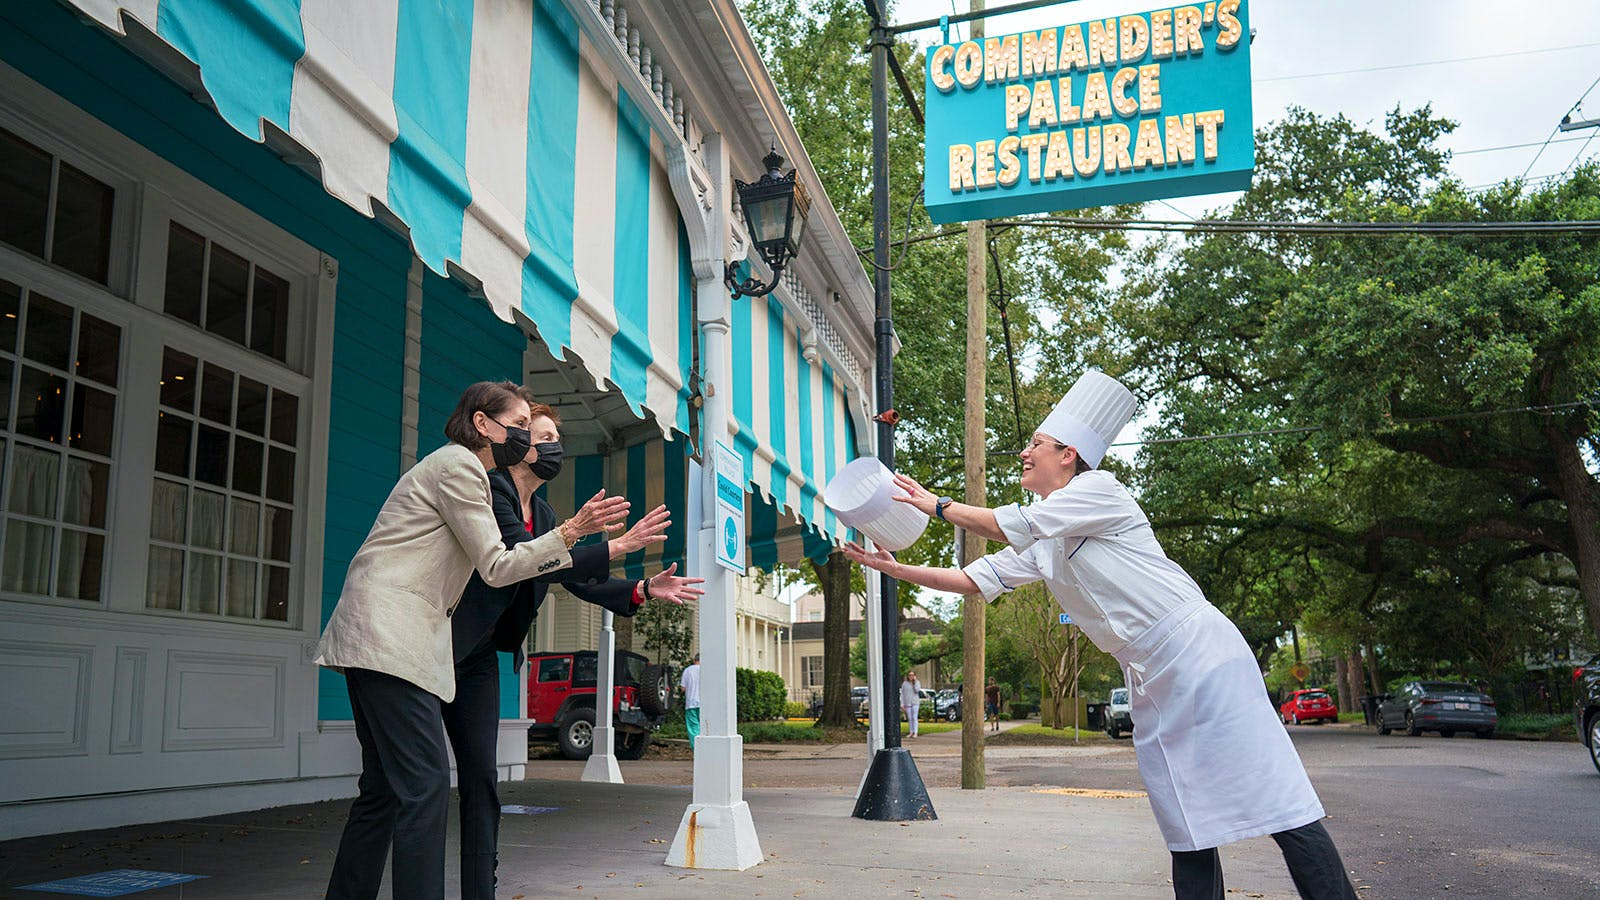 Landmark Restaurant Commander's Palace Makes History with New Chef